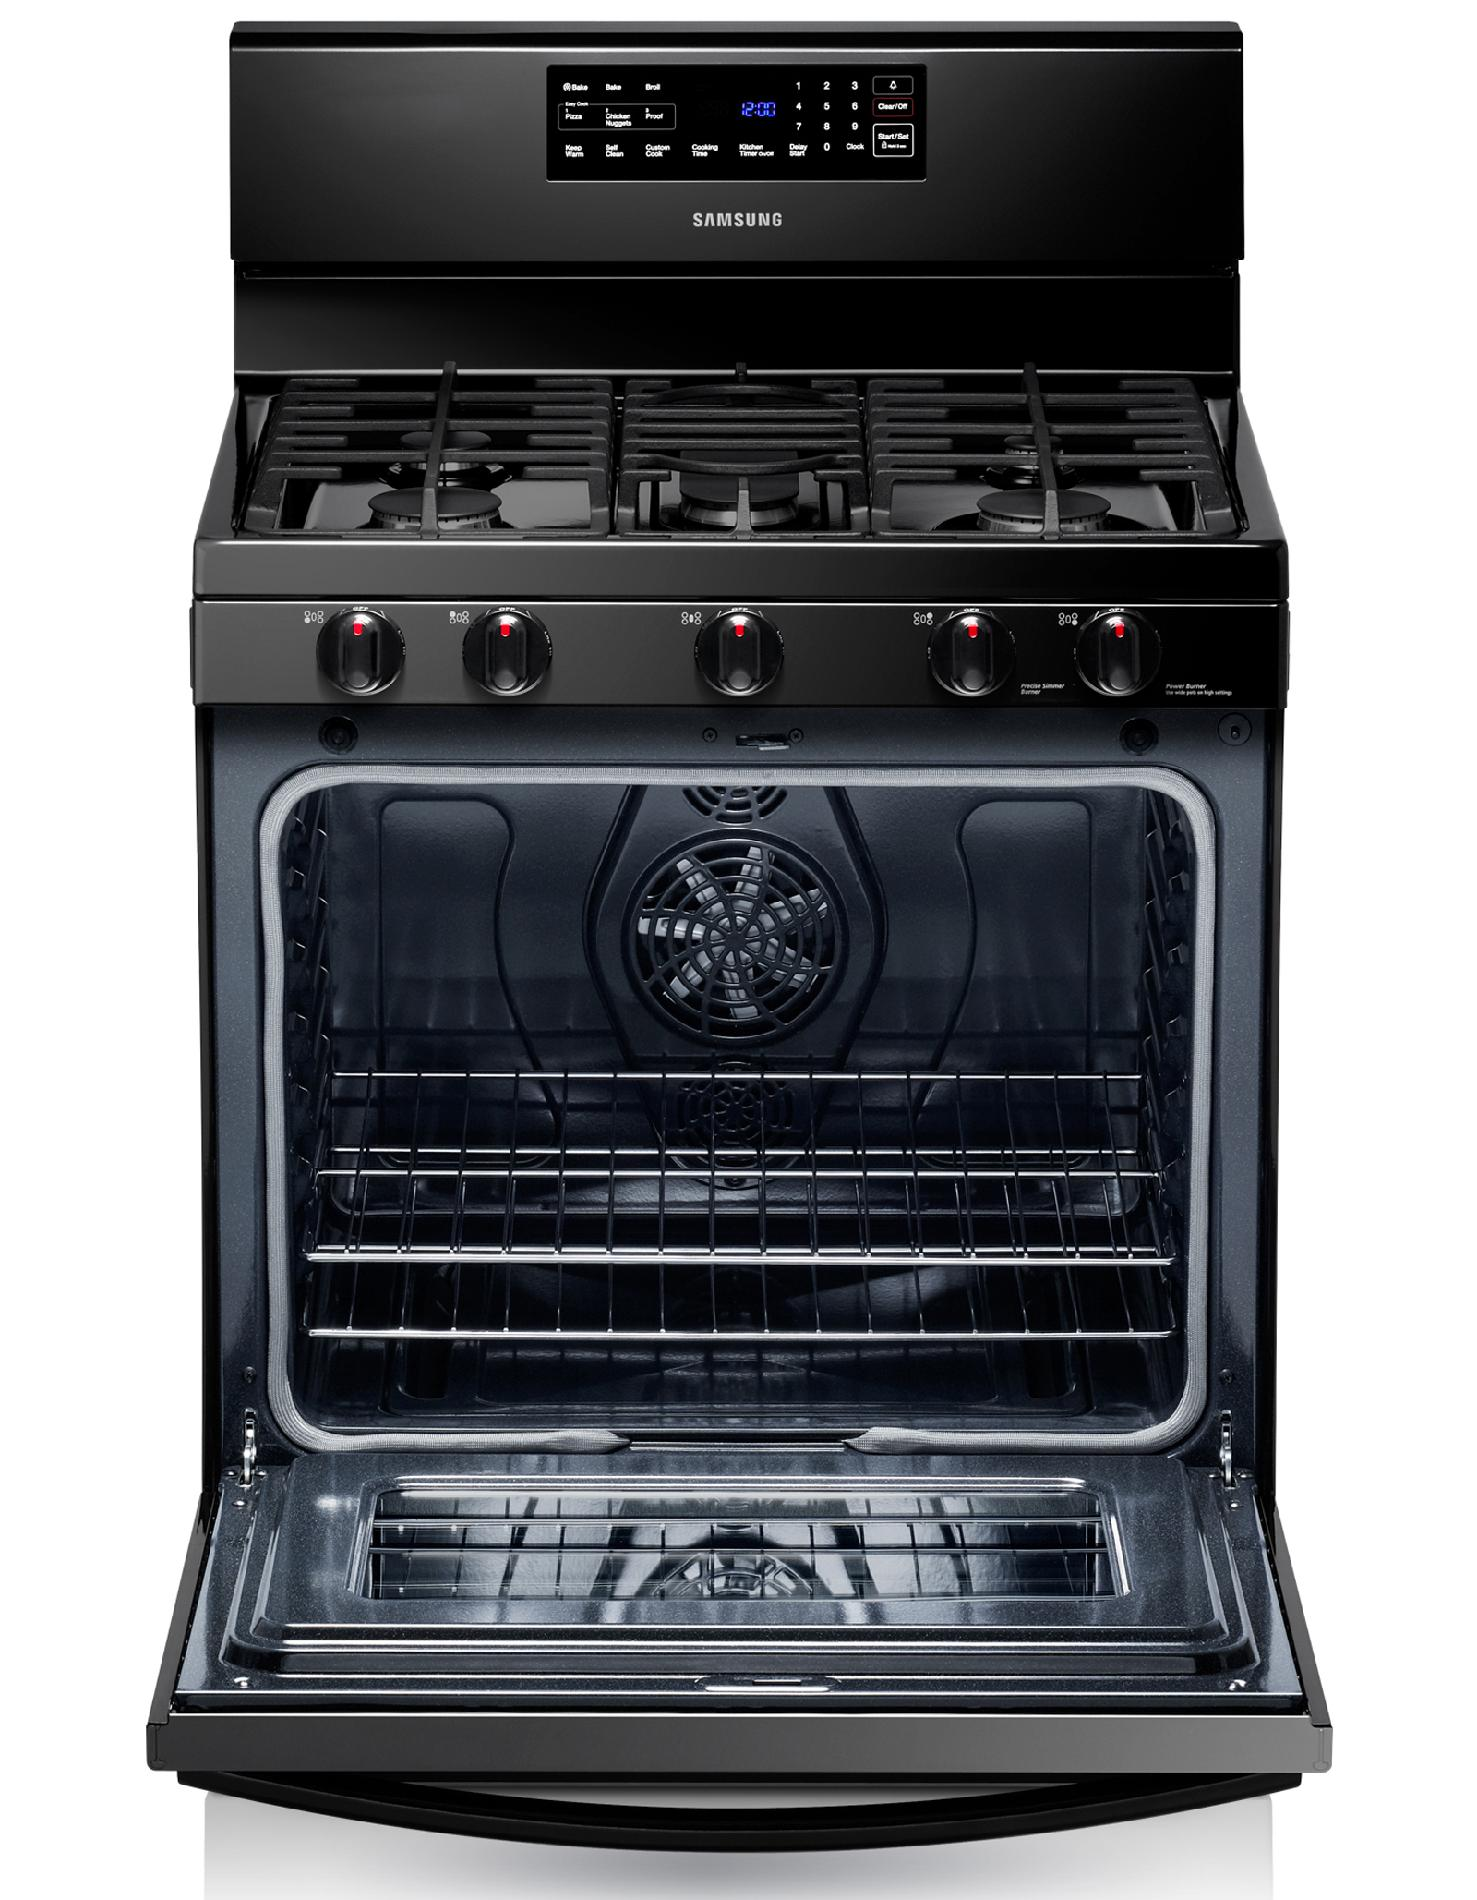 Samsung 5.8 cu. ft. Gas Range - Black